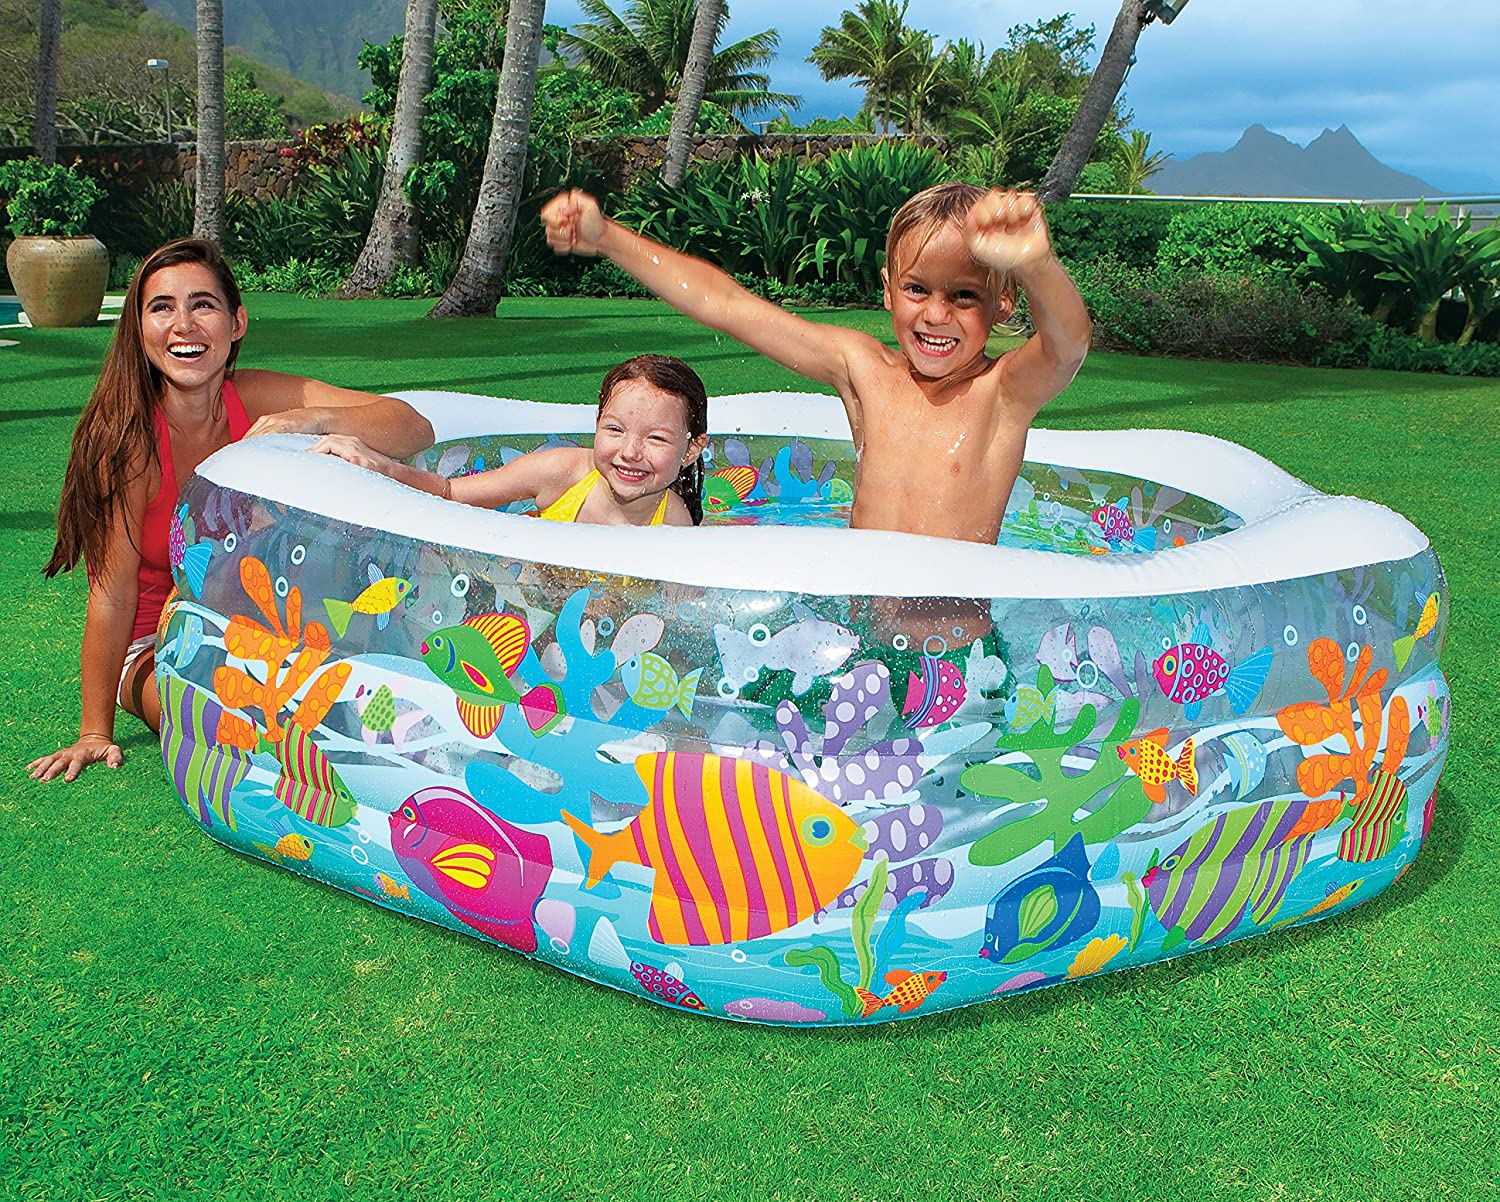 Intex Swim Center Ocean Reef Inflatable Pool, 75